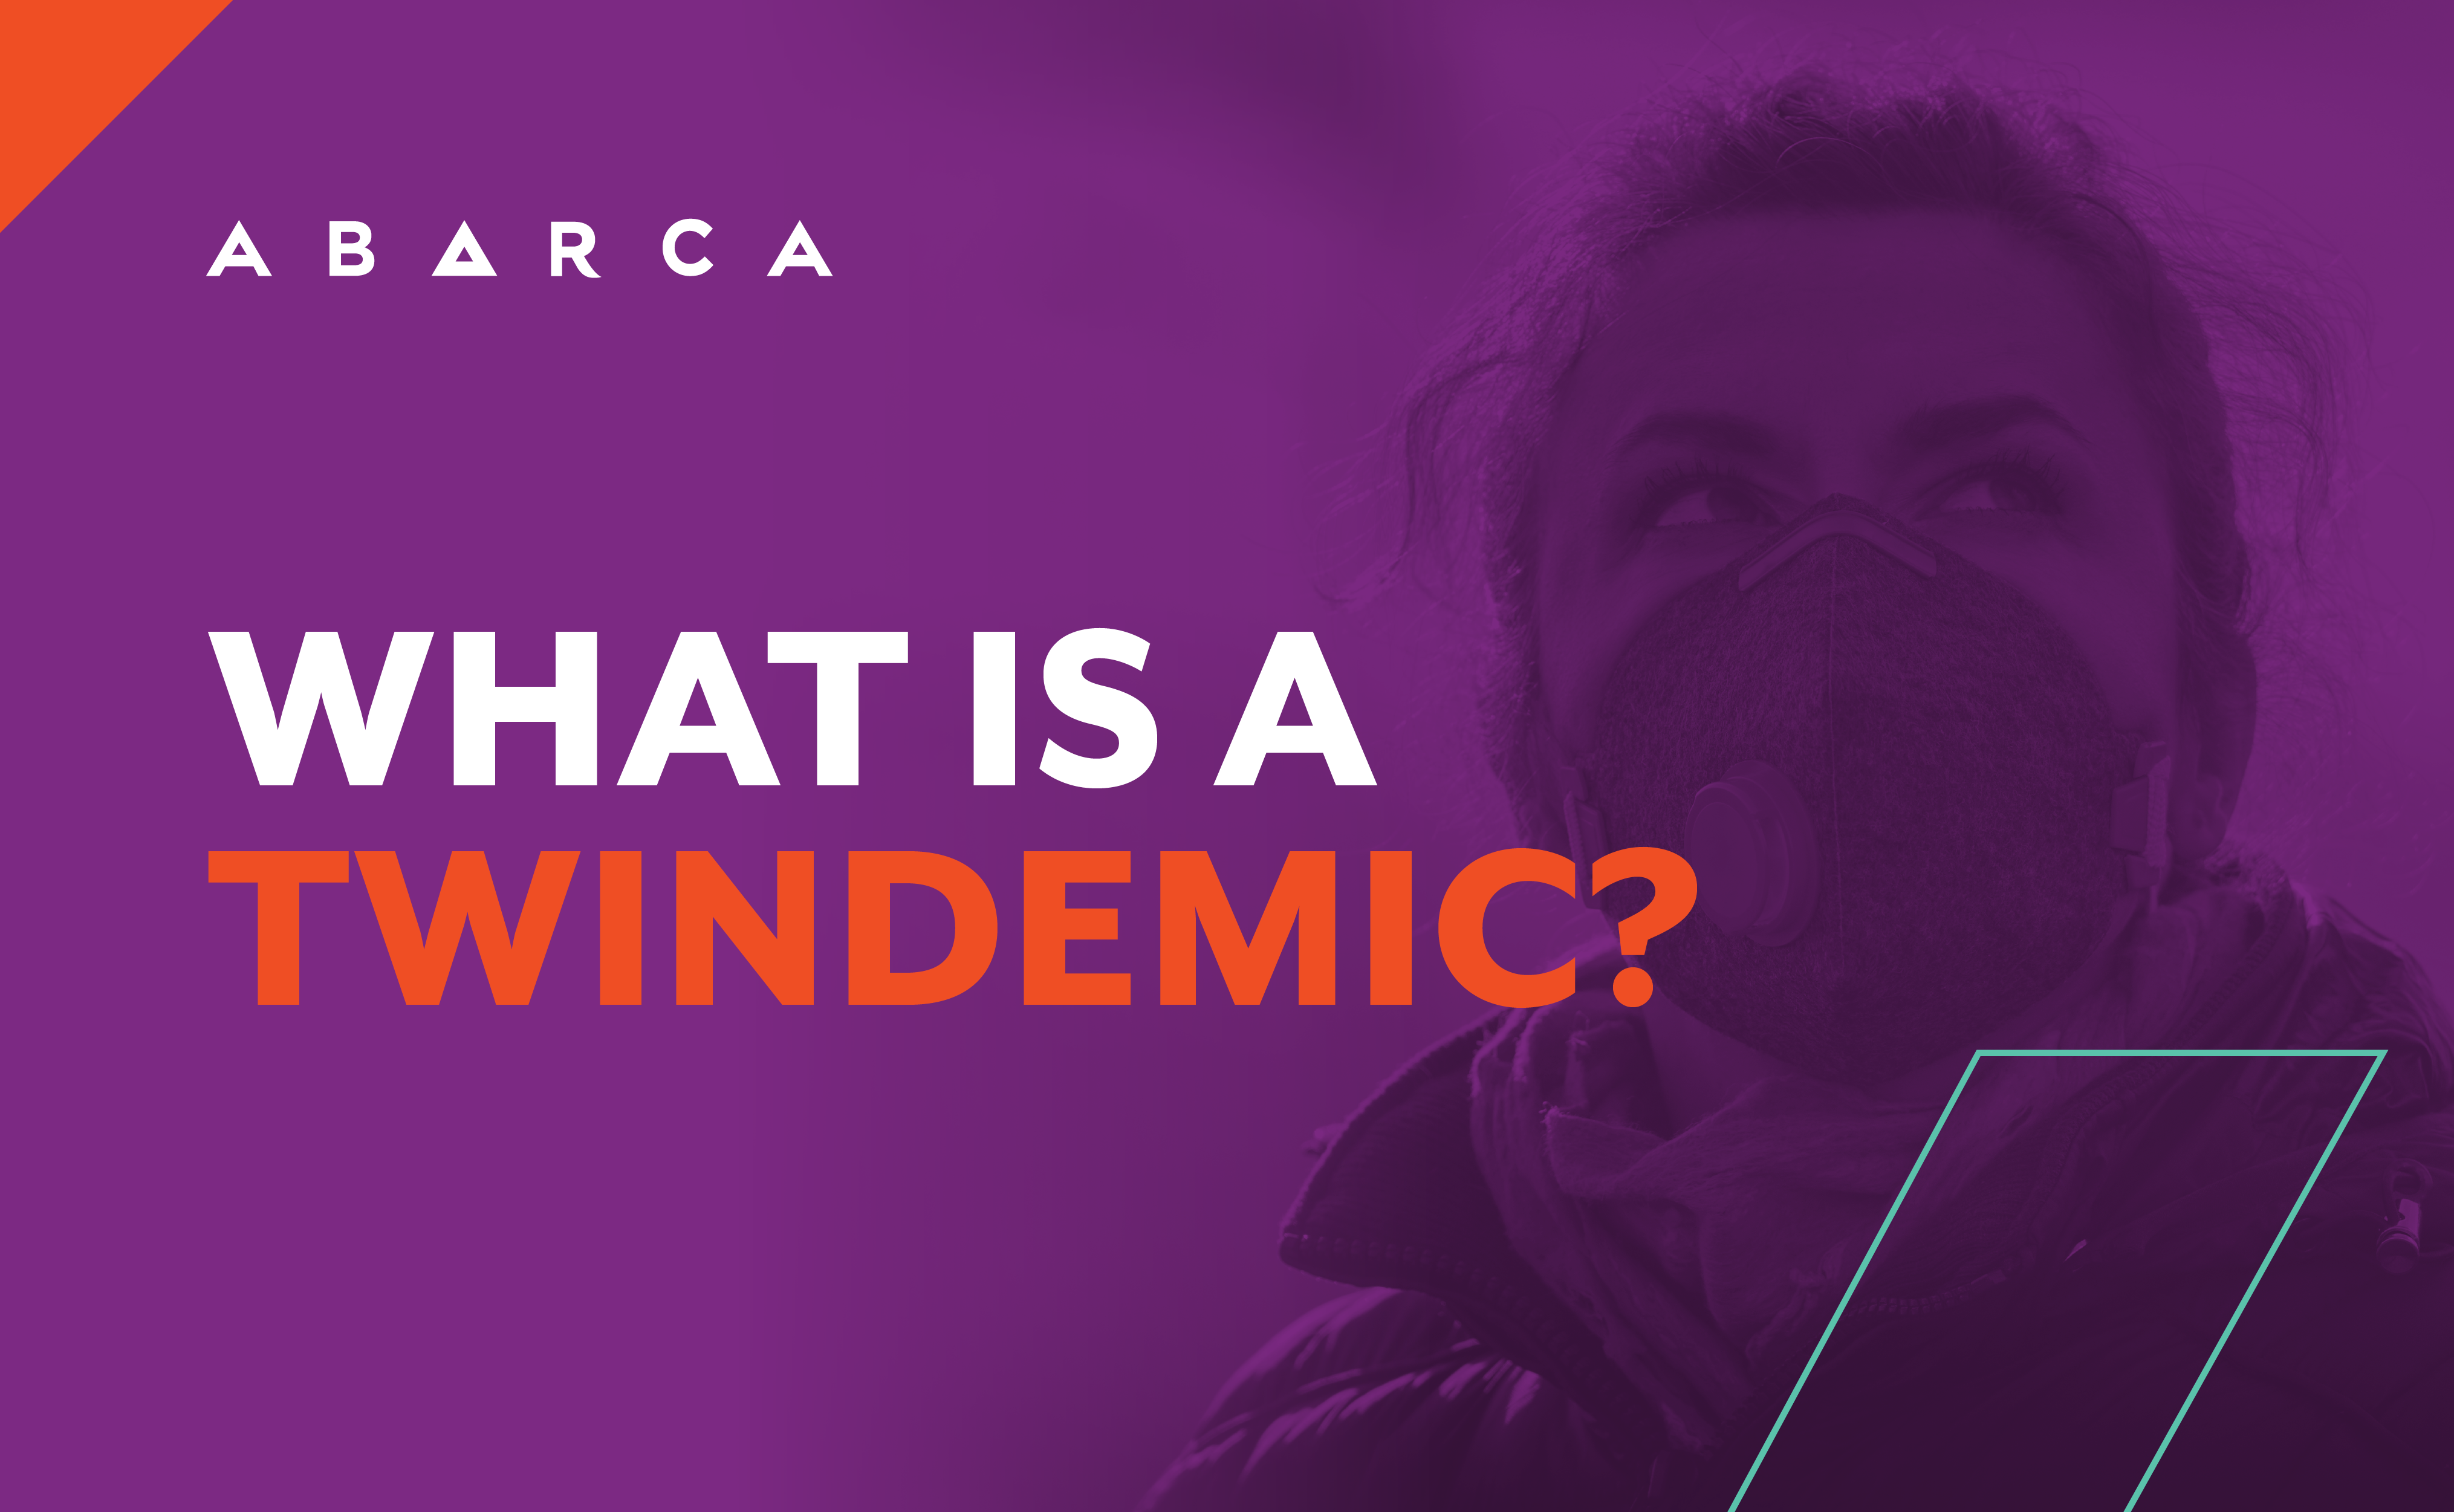 Abarca Health: What is a twindemic?